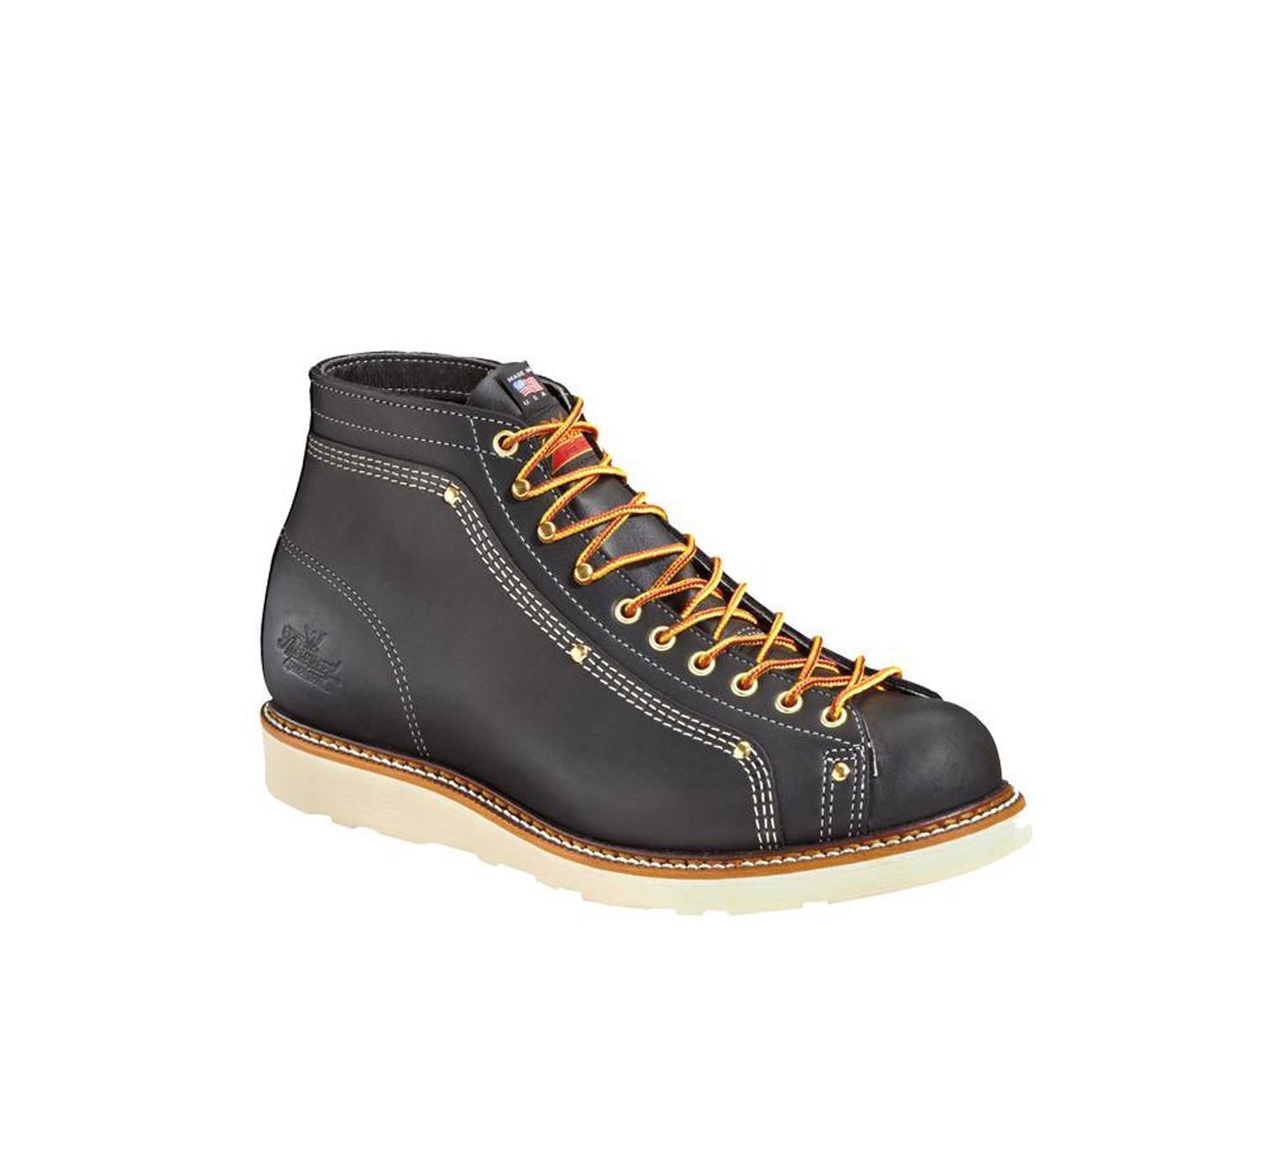 thorogood american heritage black lace up work boots